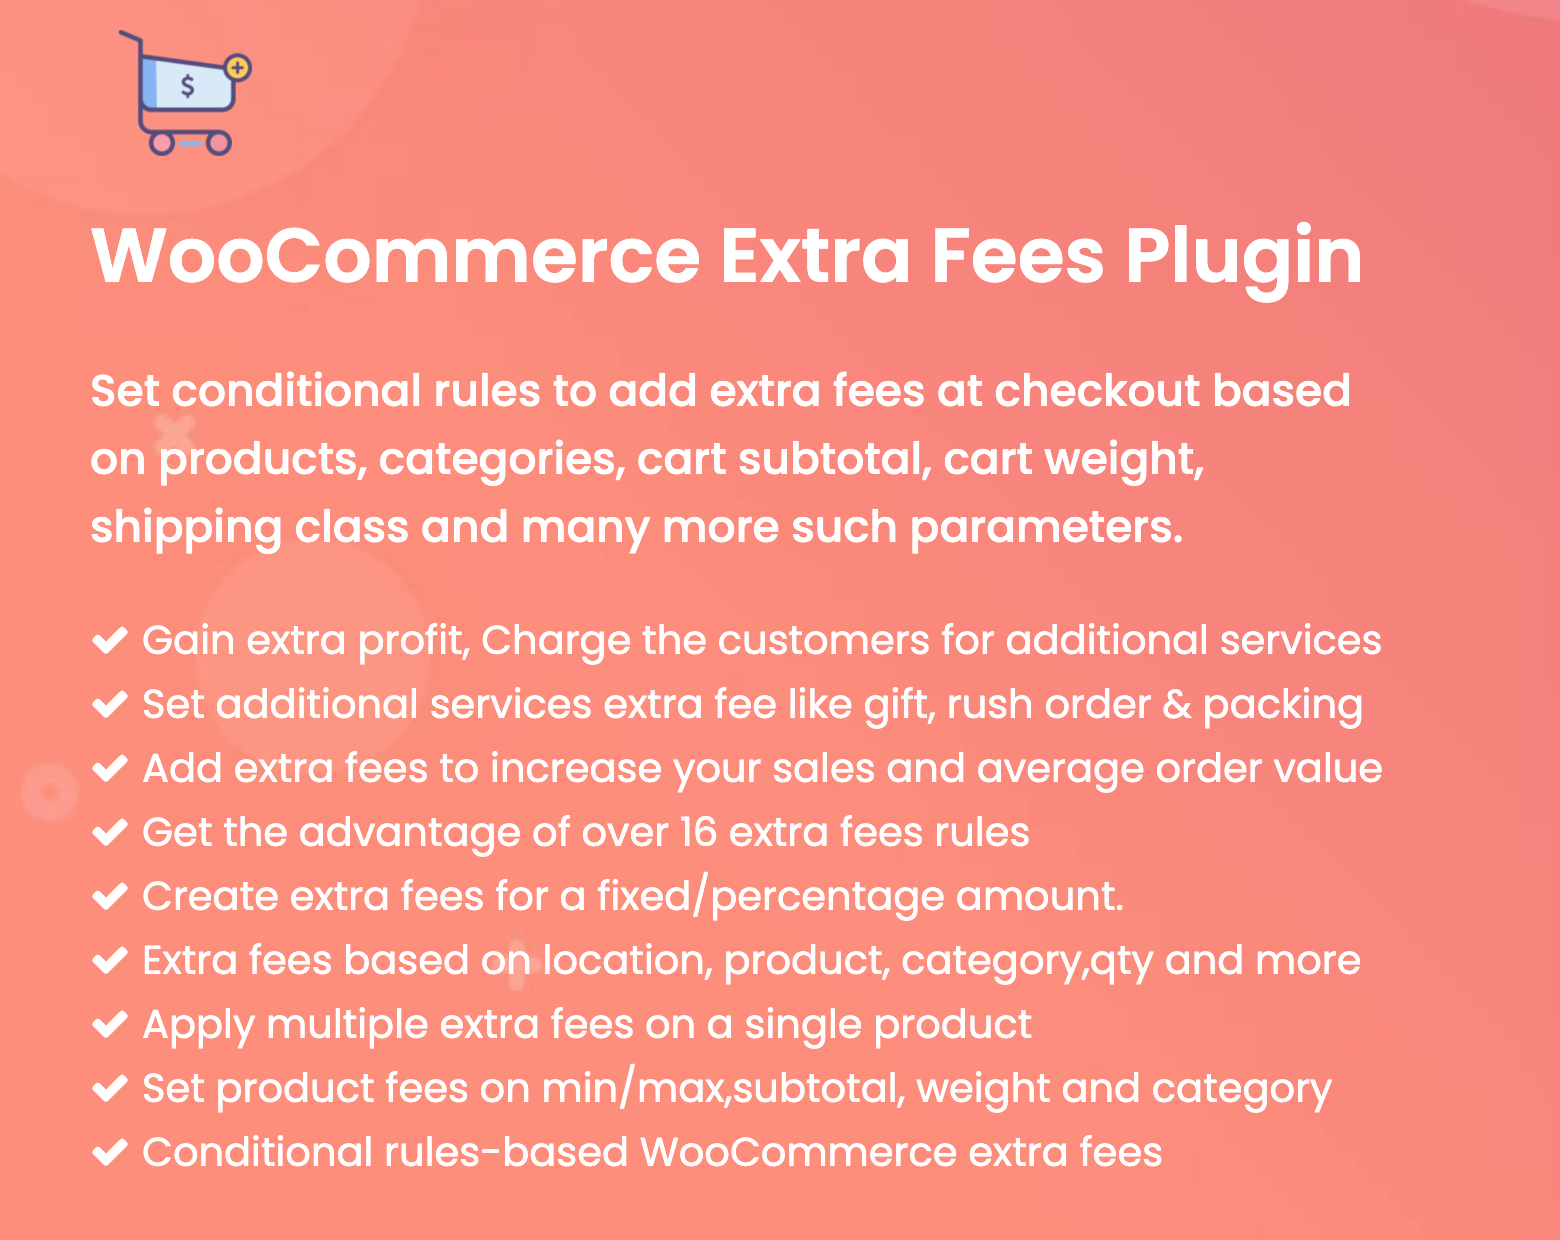 Figure 1 - WooCommerce Extra Fee Plugin and its features